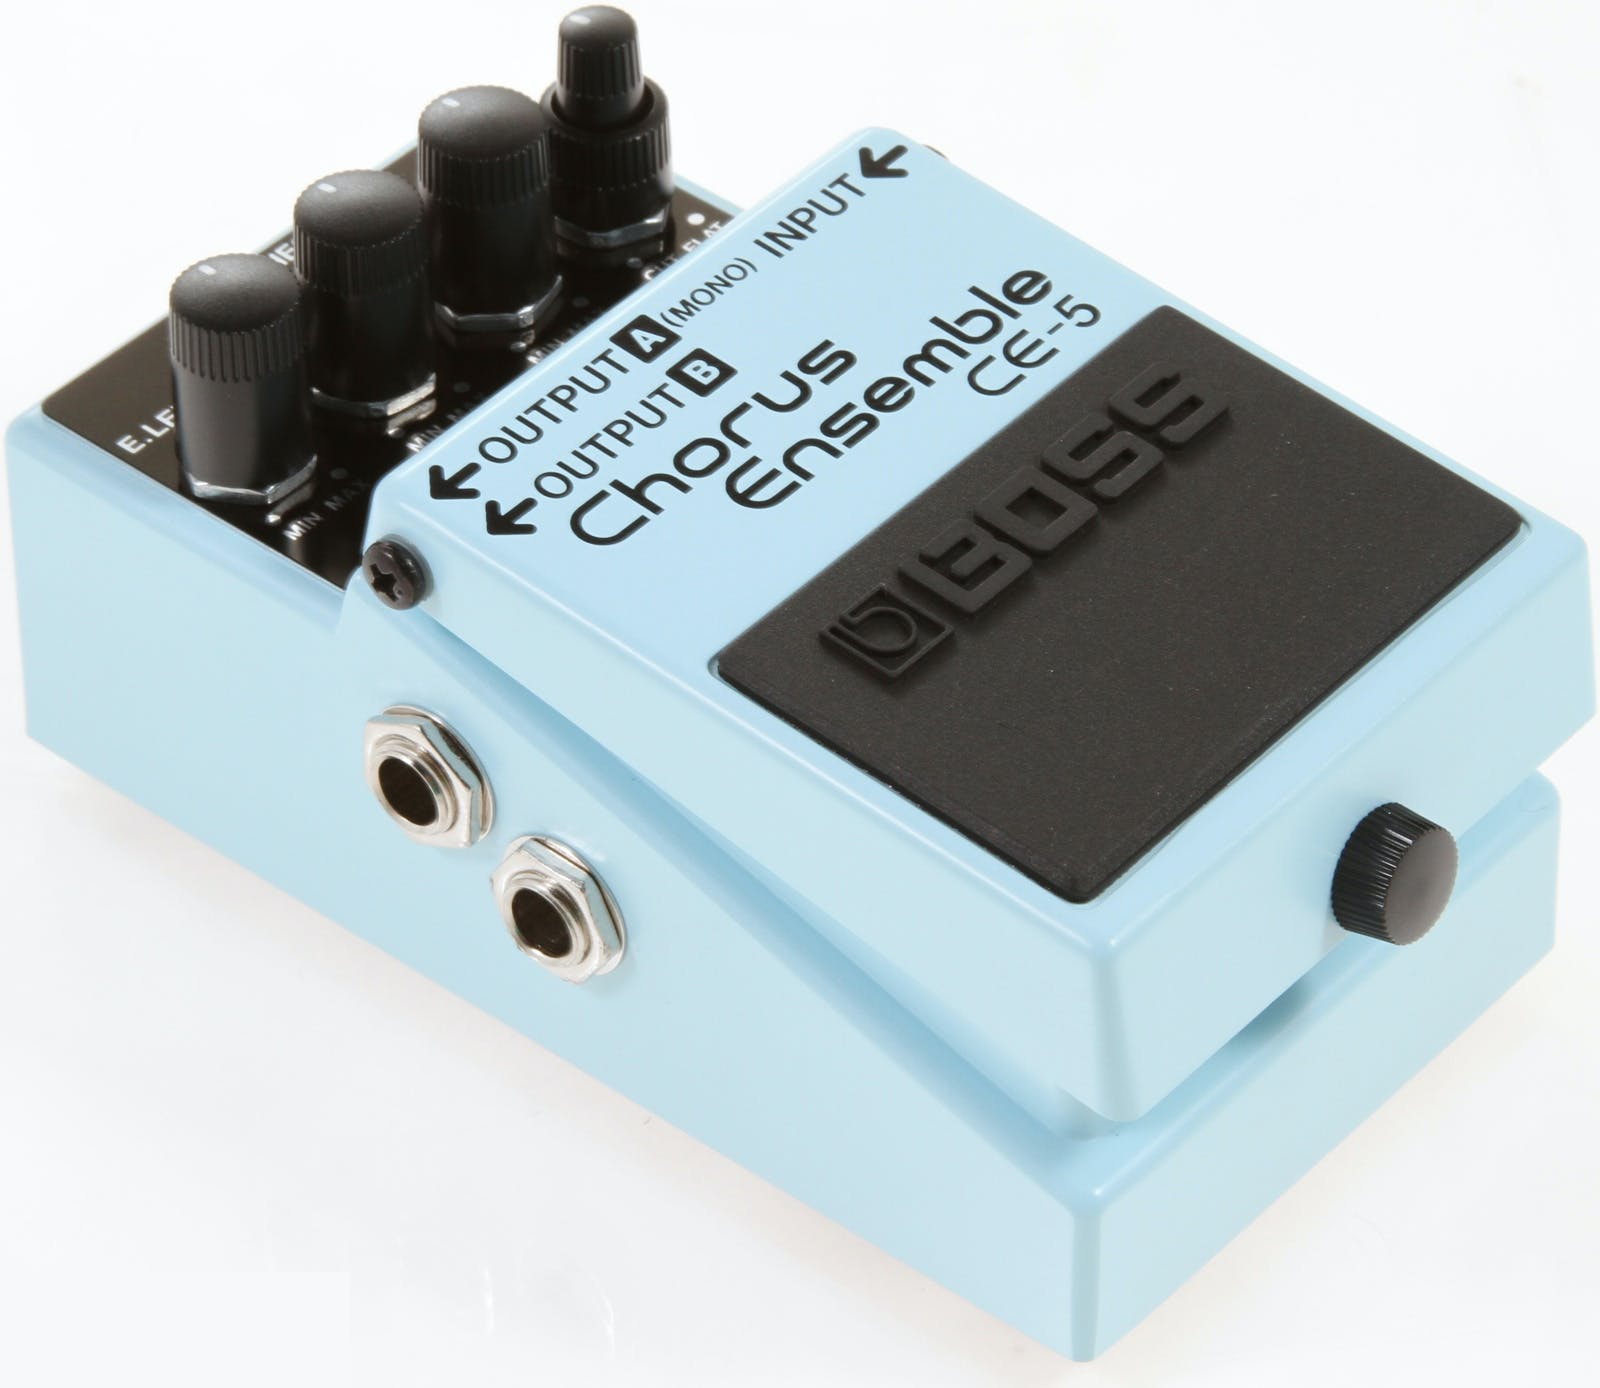 Boss Ce 5 Chorus Ensemble Pedal Andertons Music Co A Frequency Doubler Effect For Electric Guitar